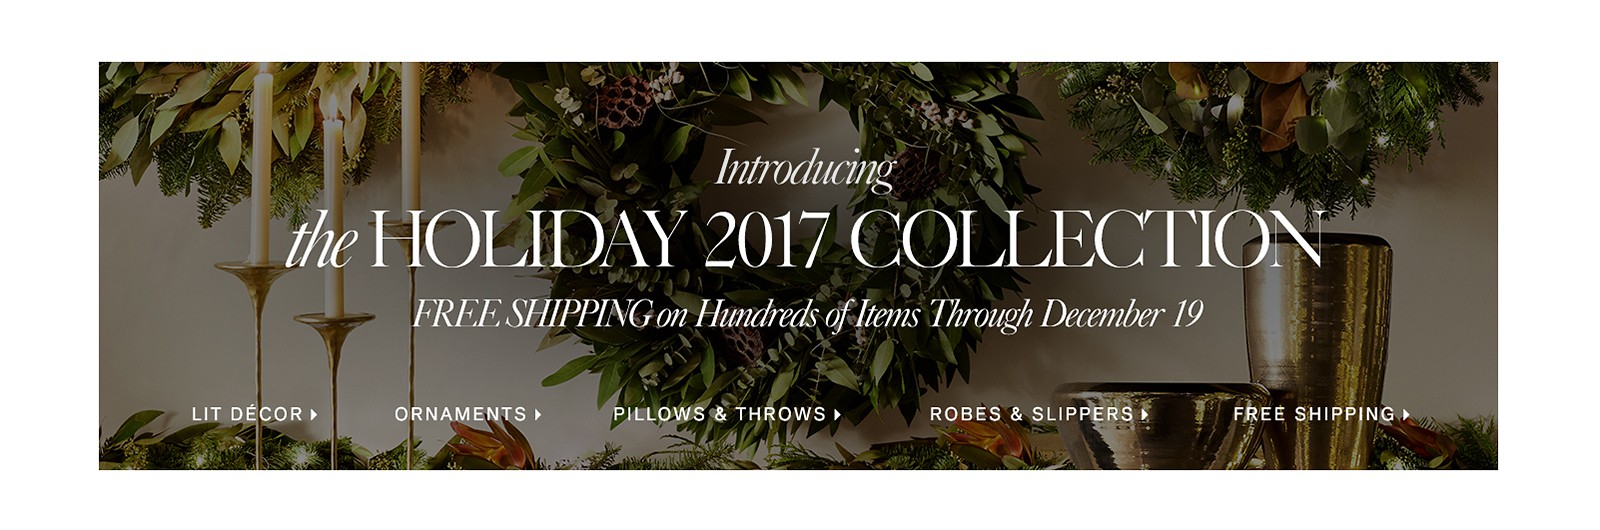 Introducing the Holiday 2017 Collection